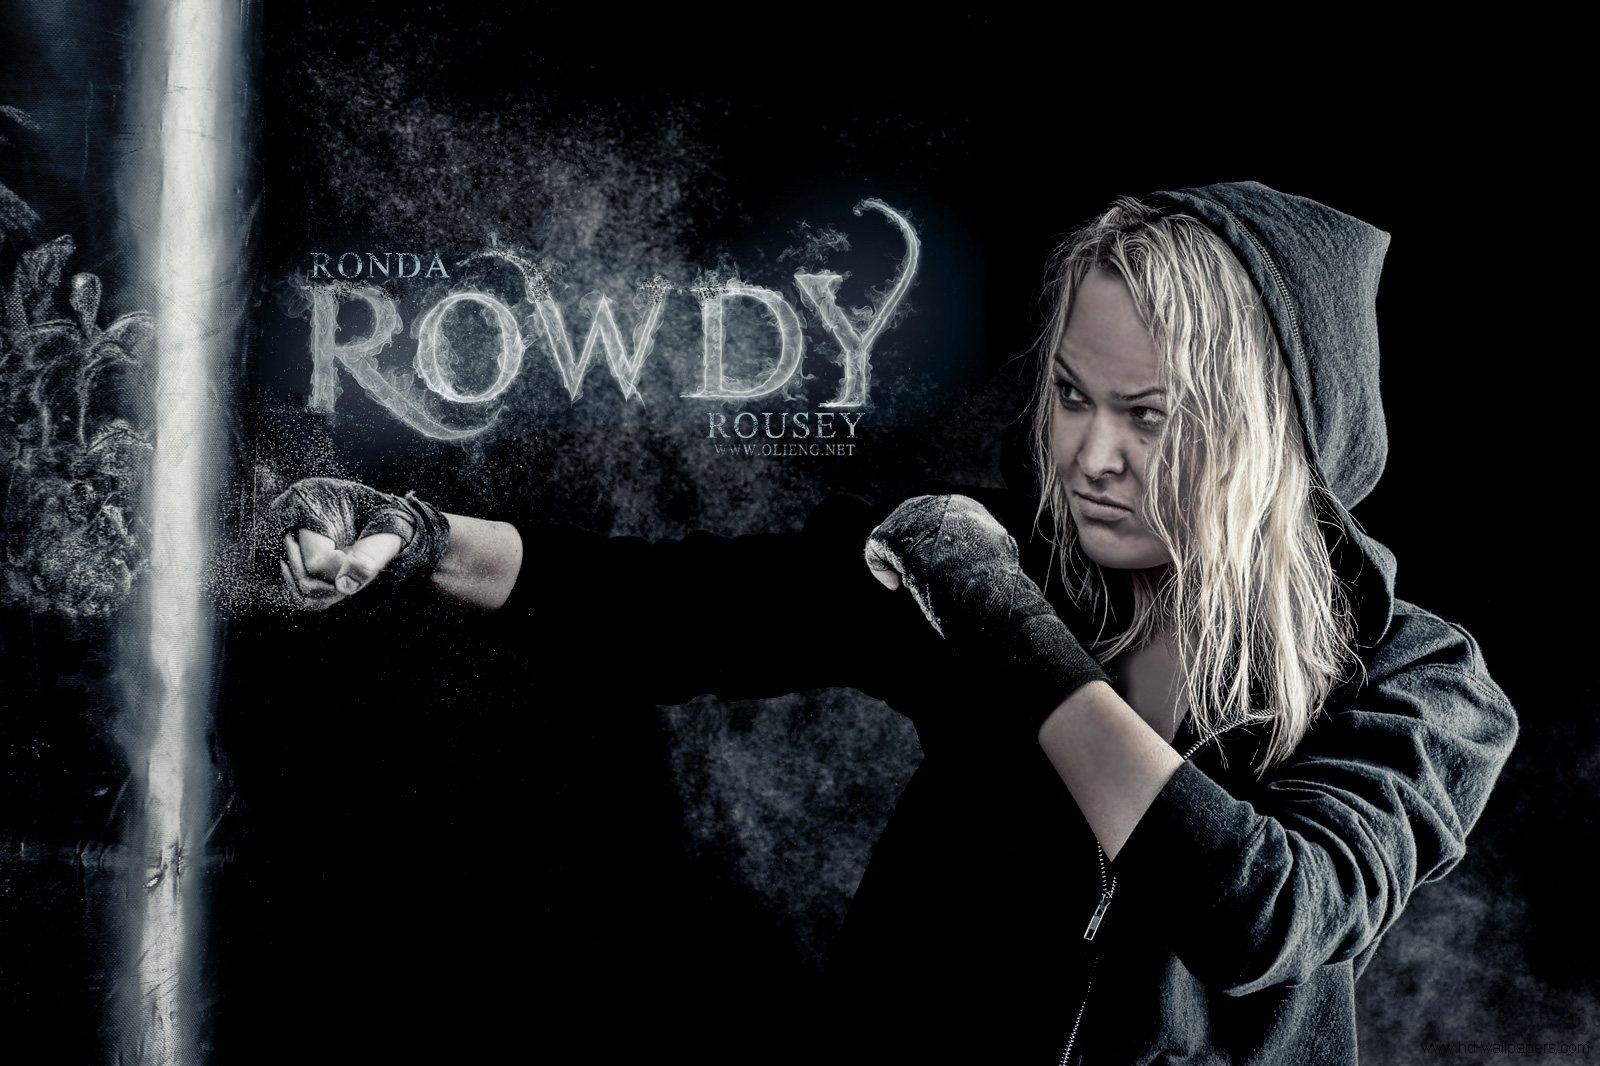 Super Cool Wallpapers For Girls Download Ronda Rousey Wallpaper Gallery